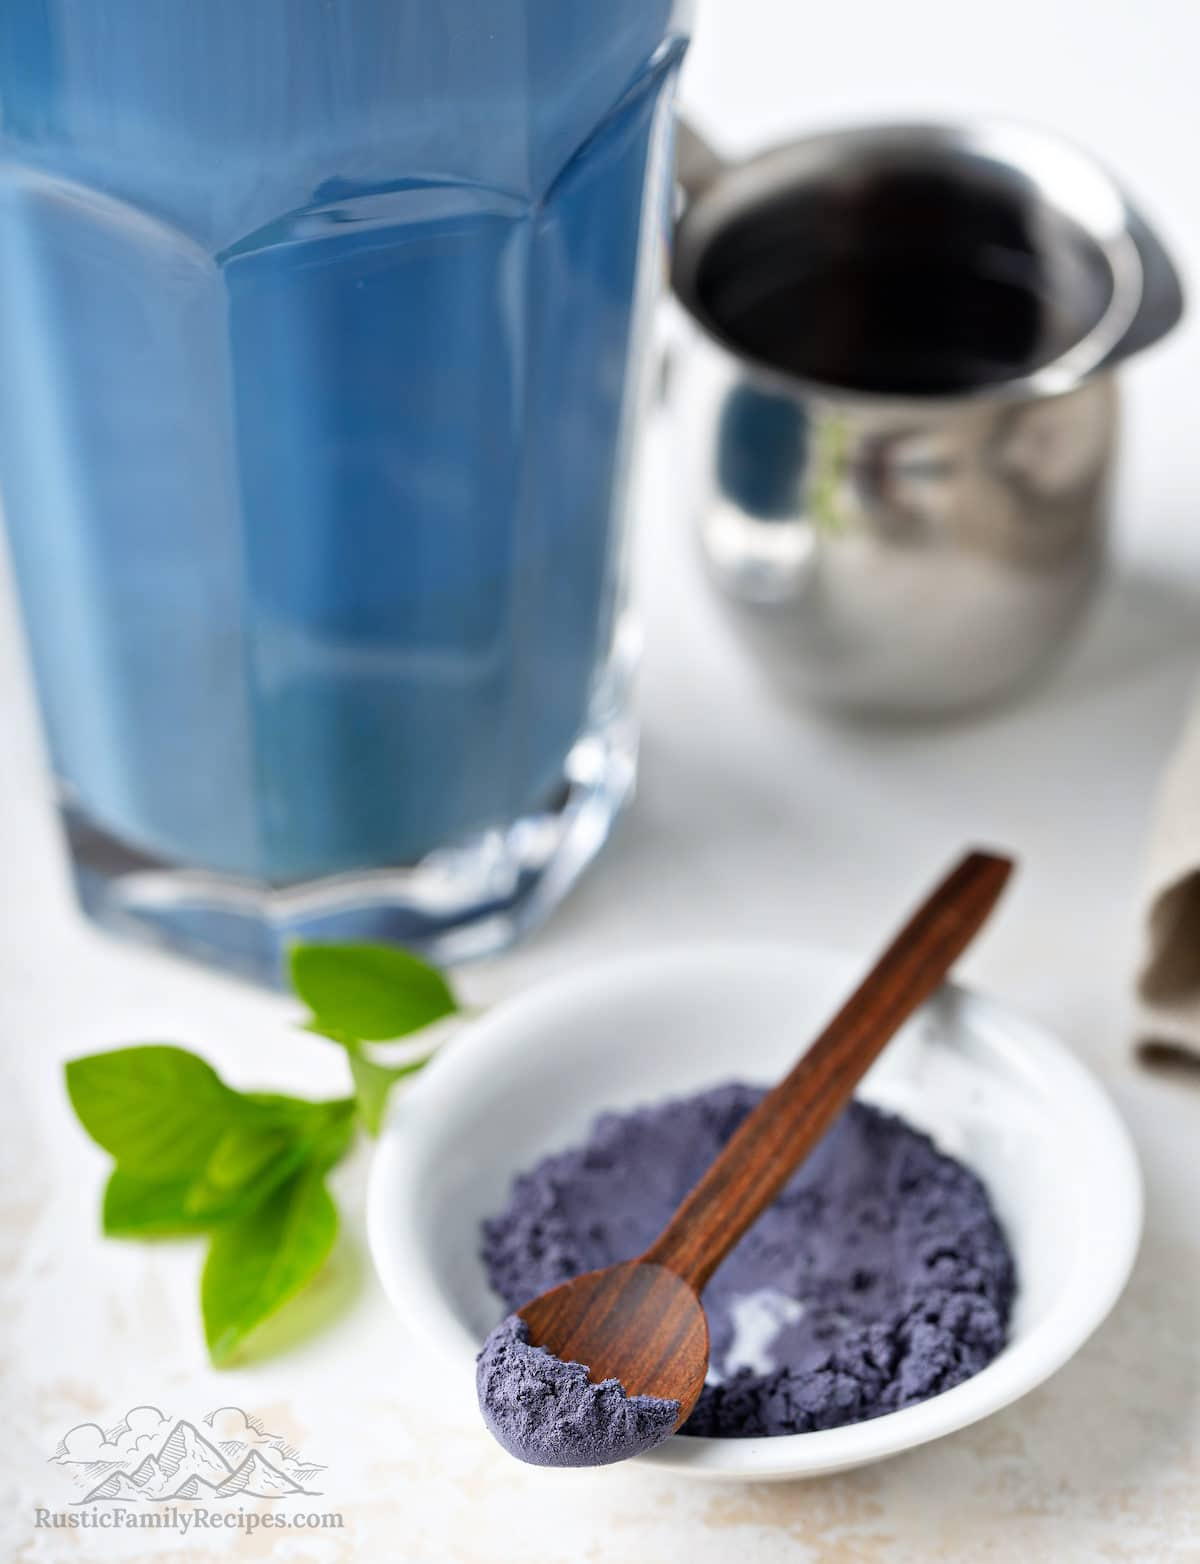 A white plate filled with blue matcha powder, a wooden spoon on top with powder.